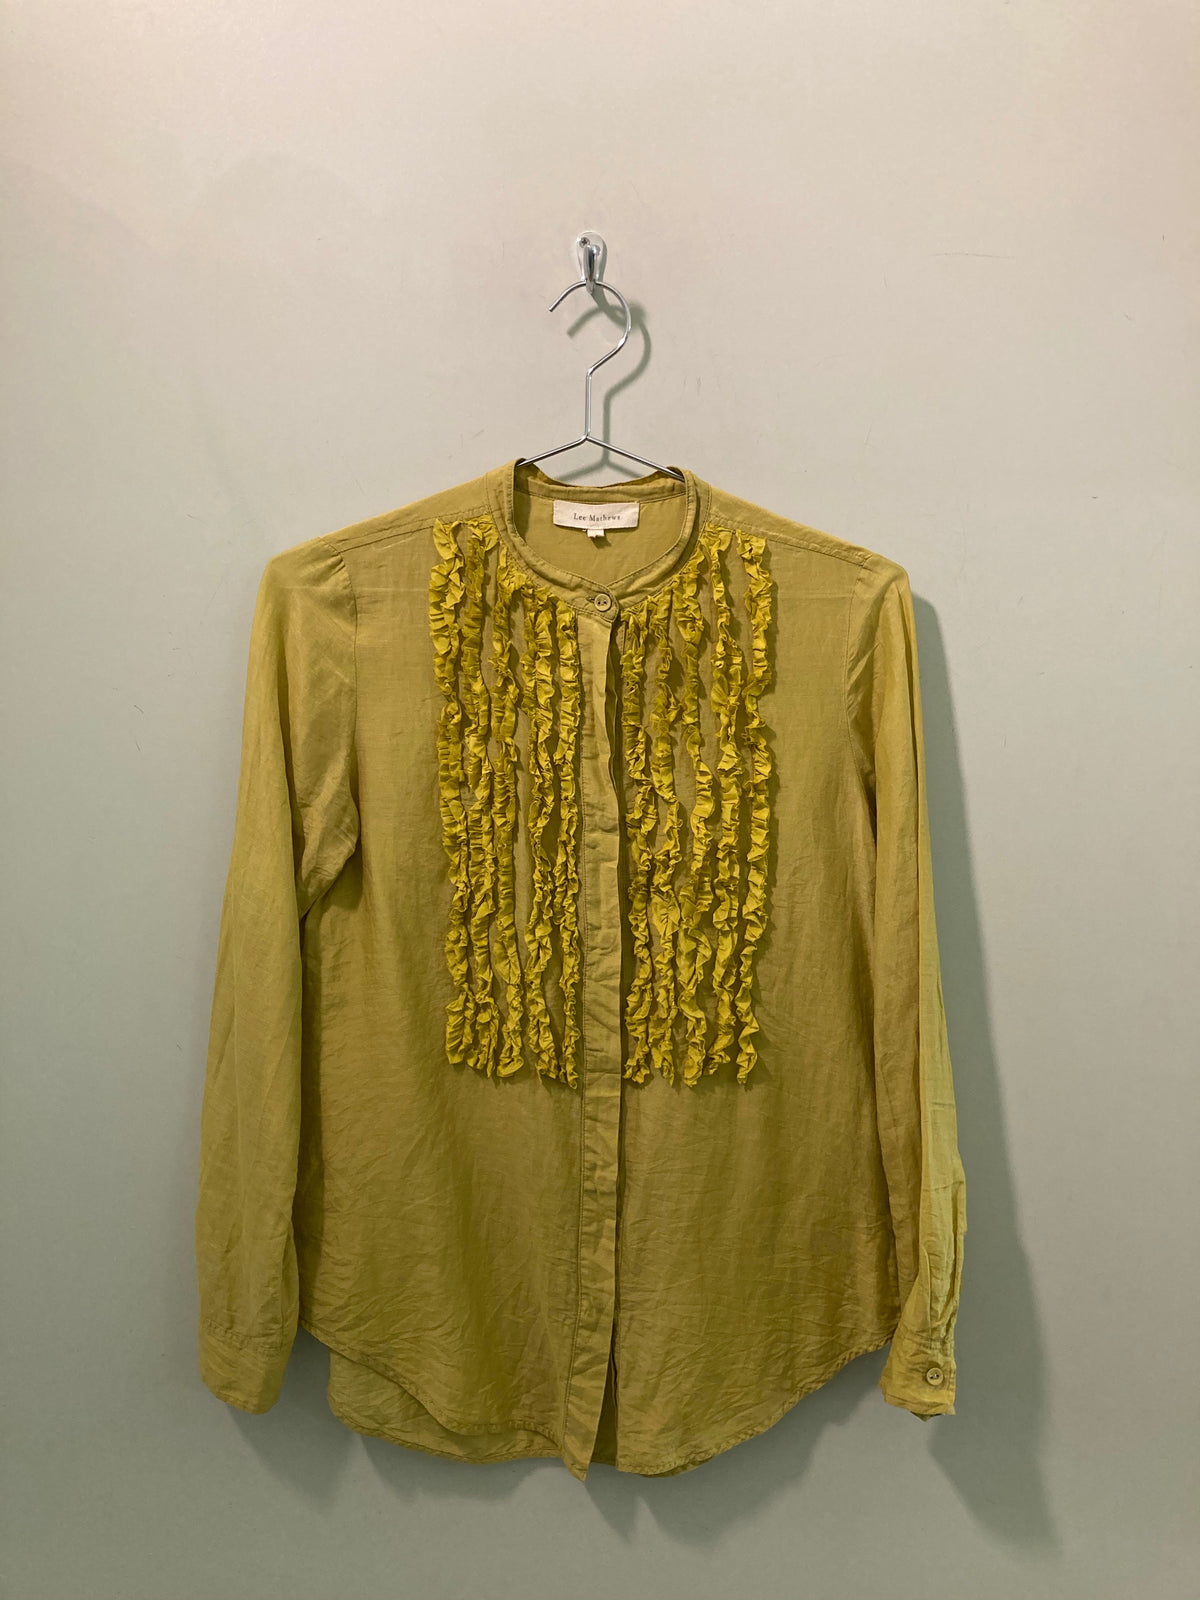 Lee Mathews Ruffled Shirt